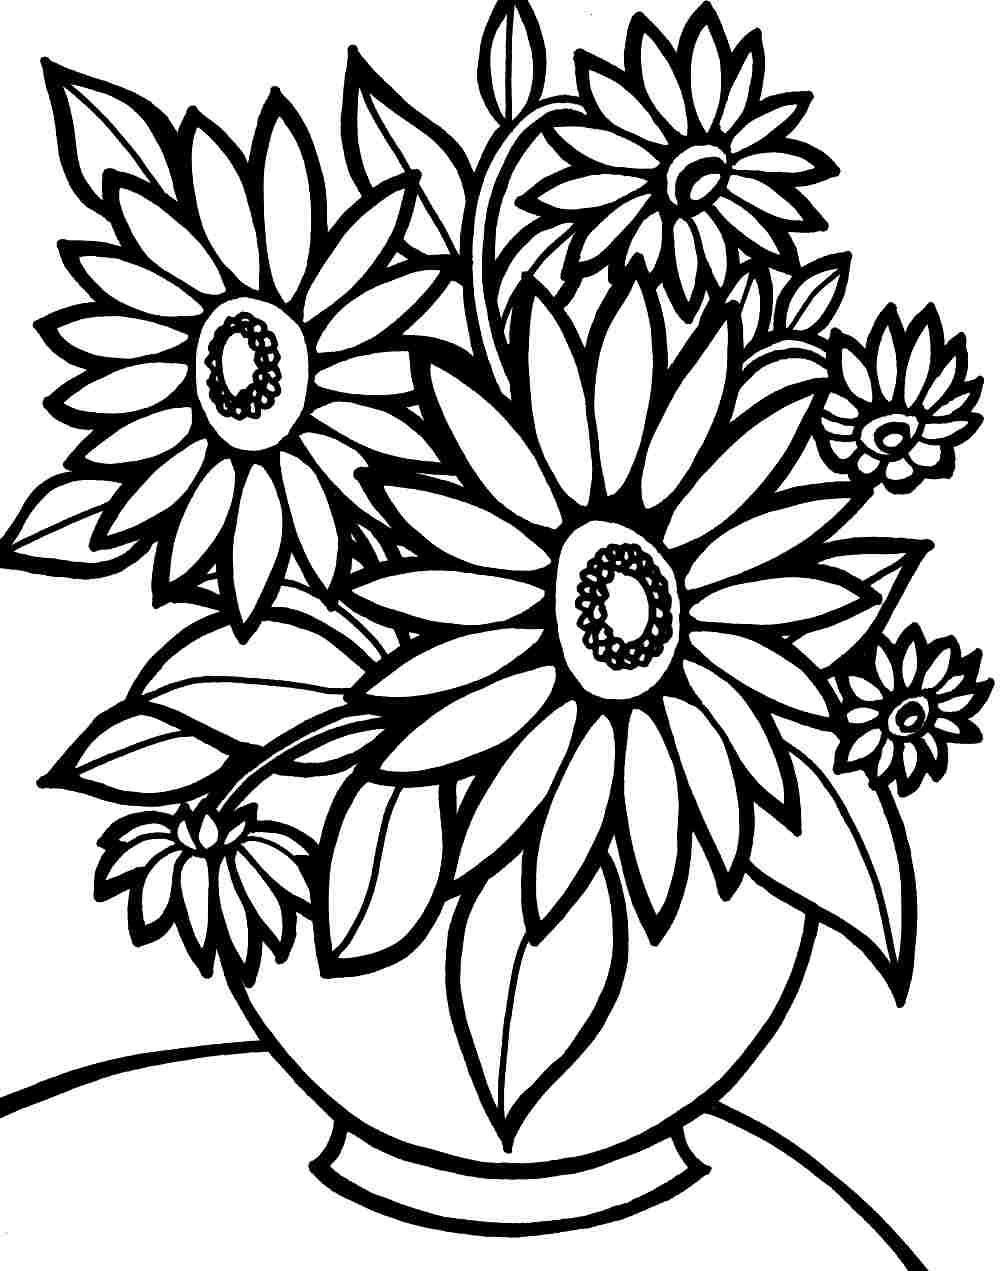 flower coloring pages kids - photo#23